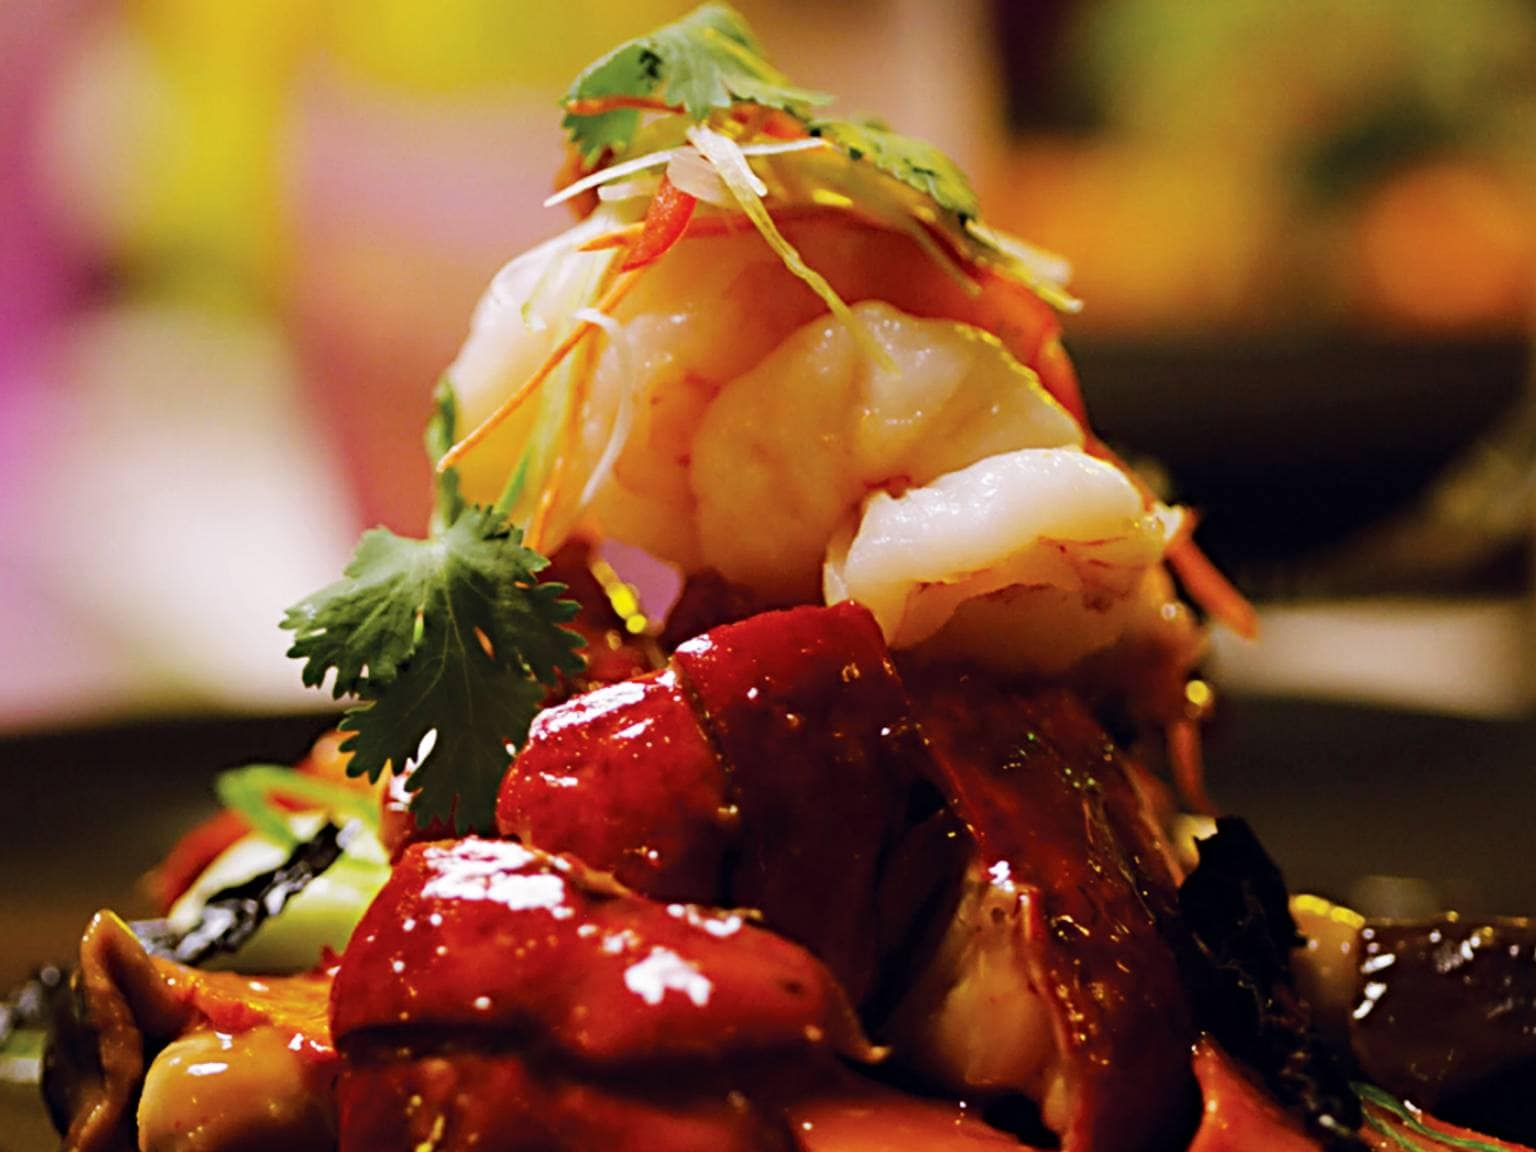 A dish at Asian restaurant Tamarind on a Holland America Cruise Ship (source: Holland America Line)